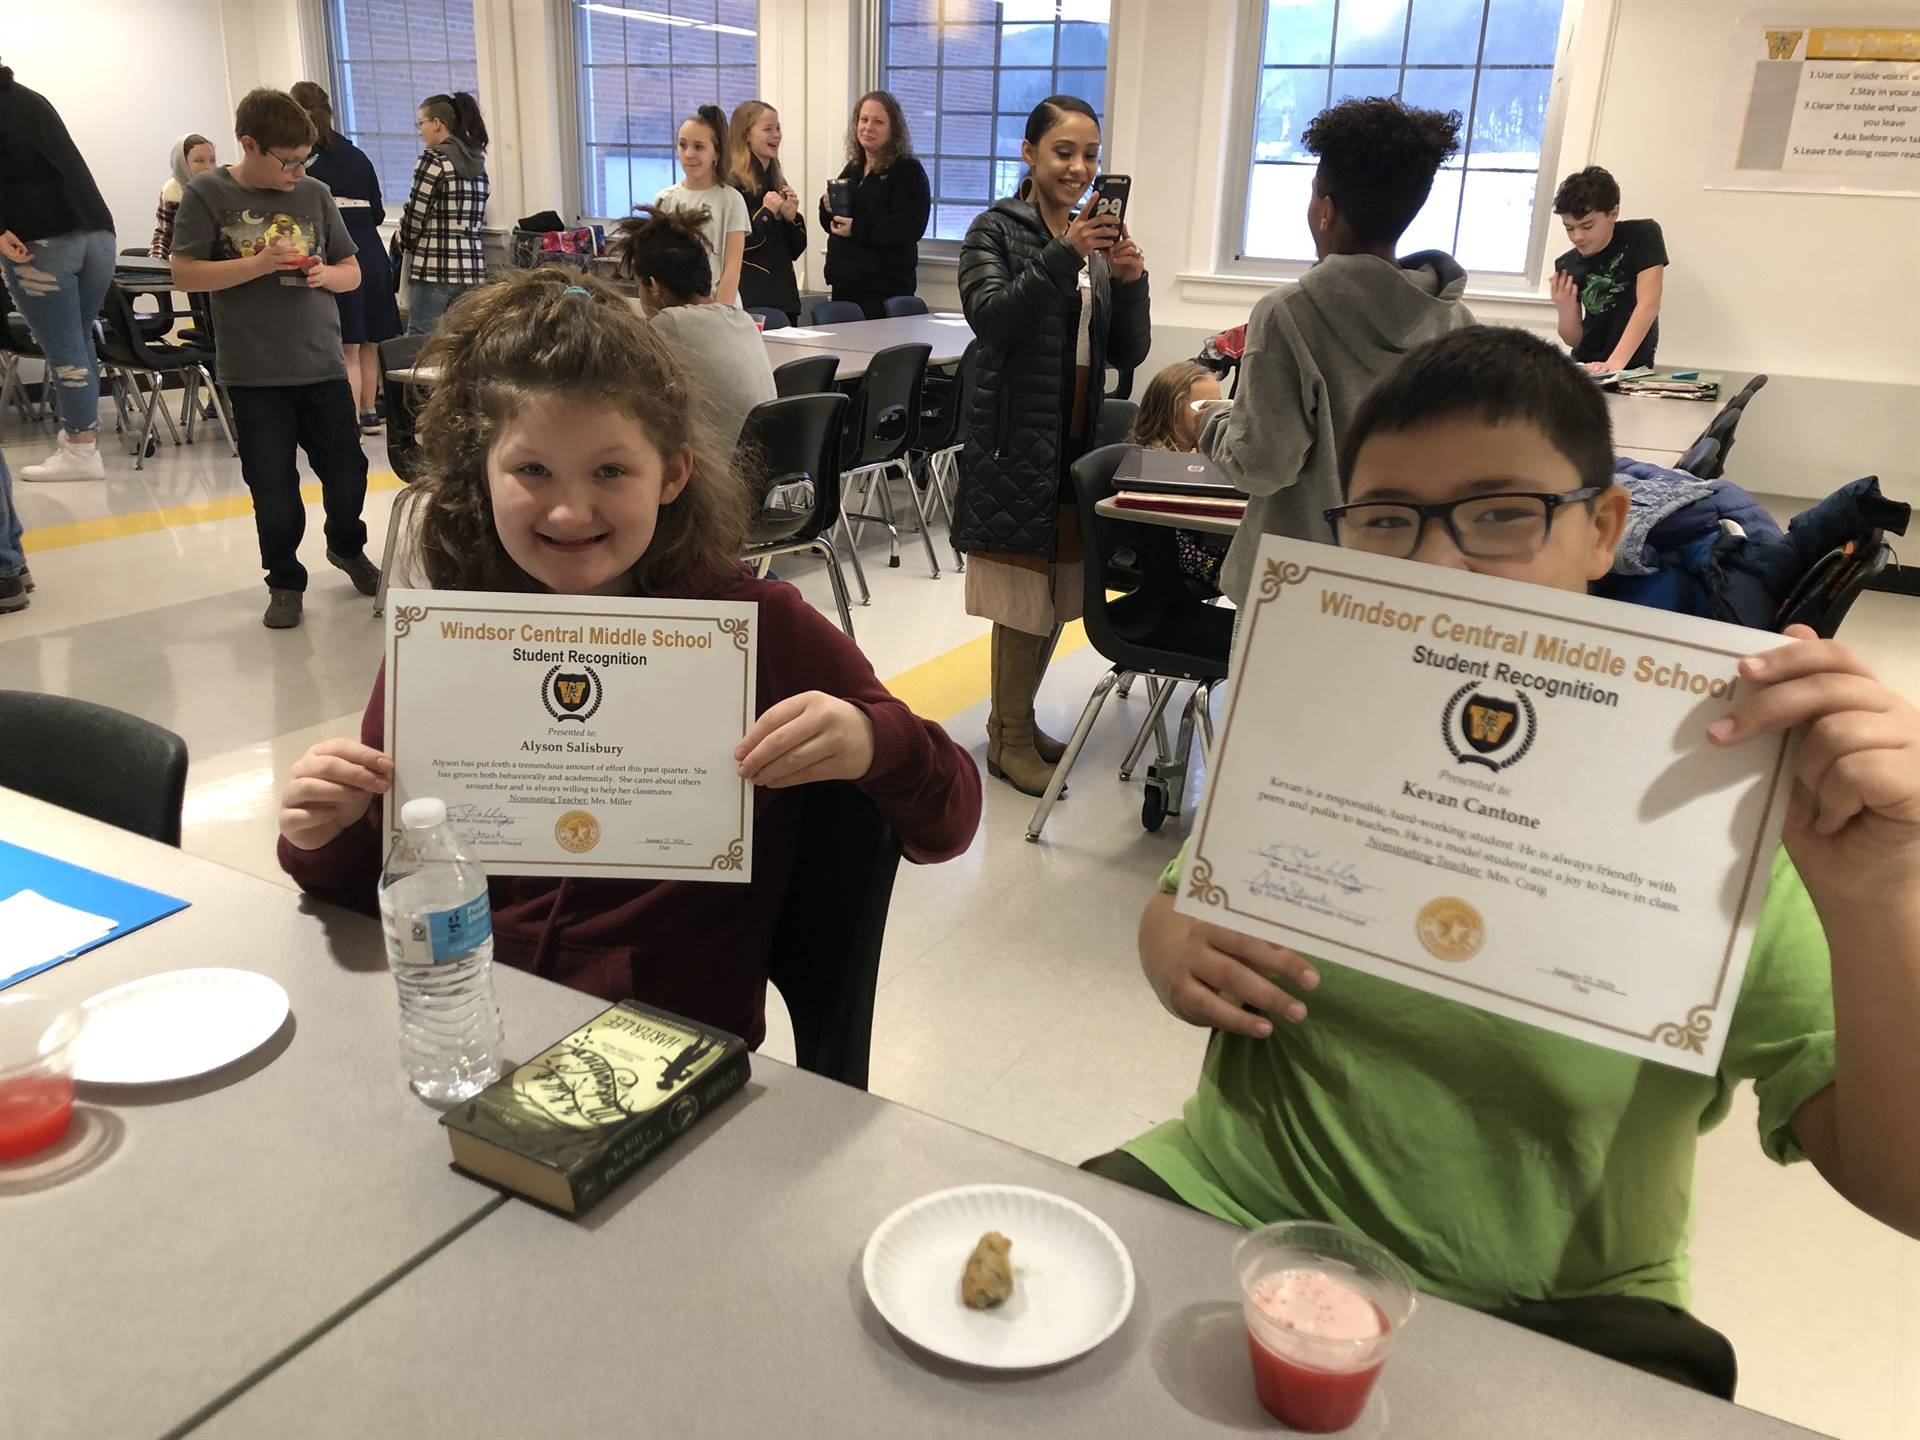 Two children sitting, holding certificates